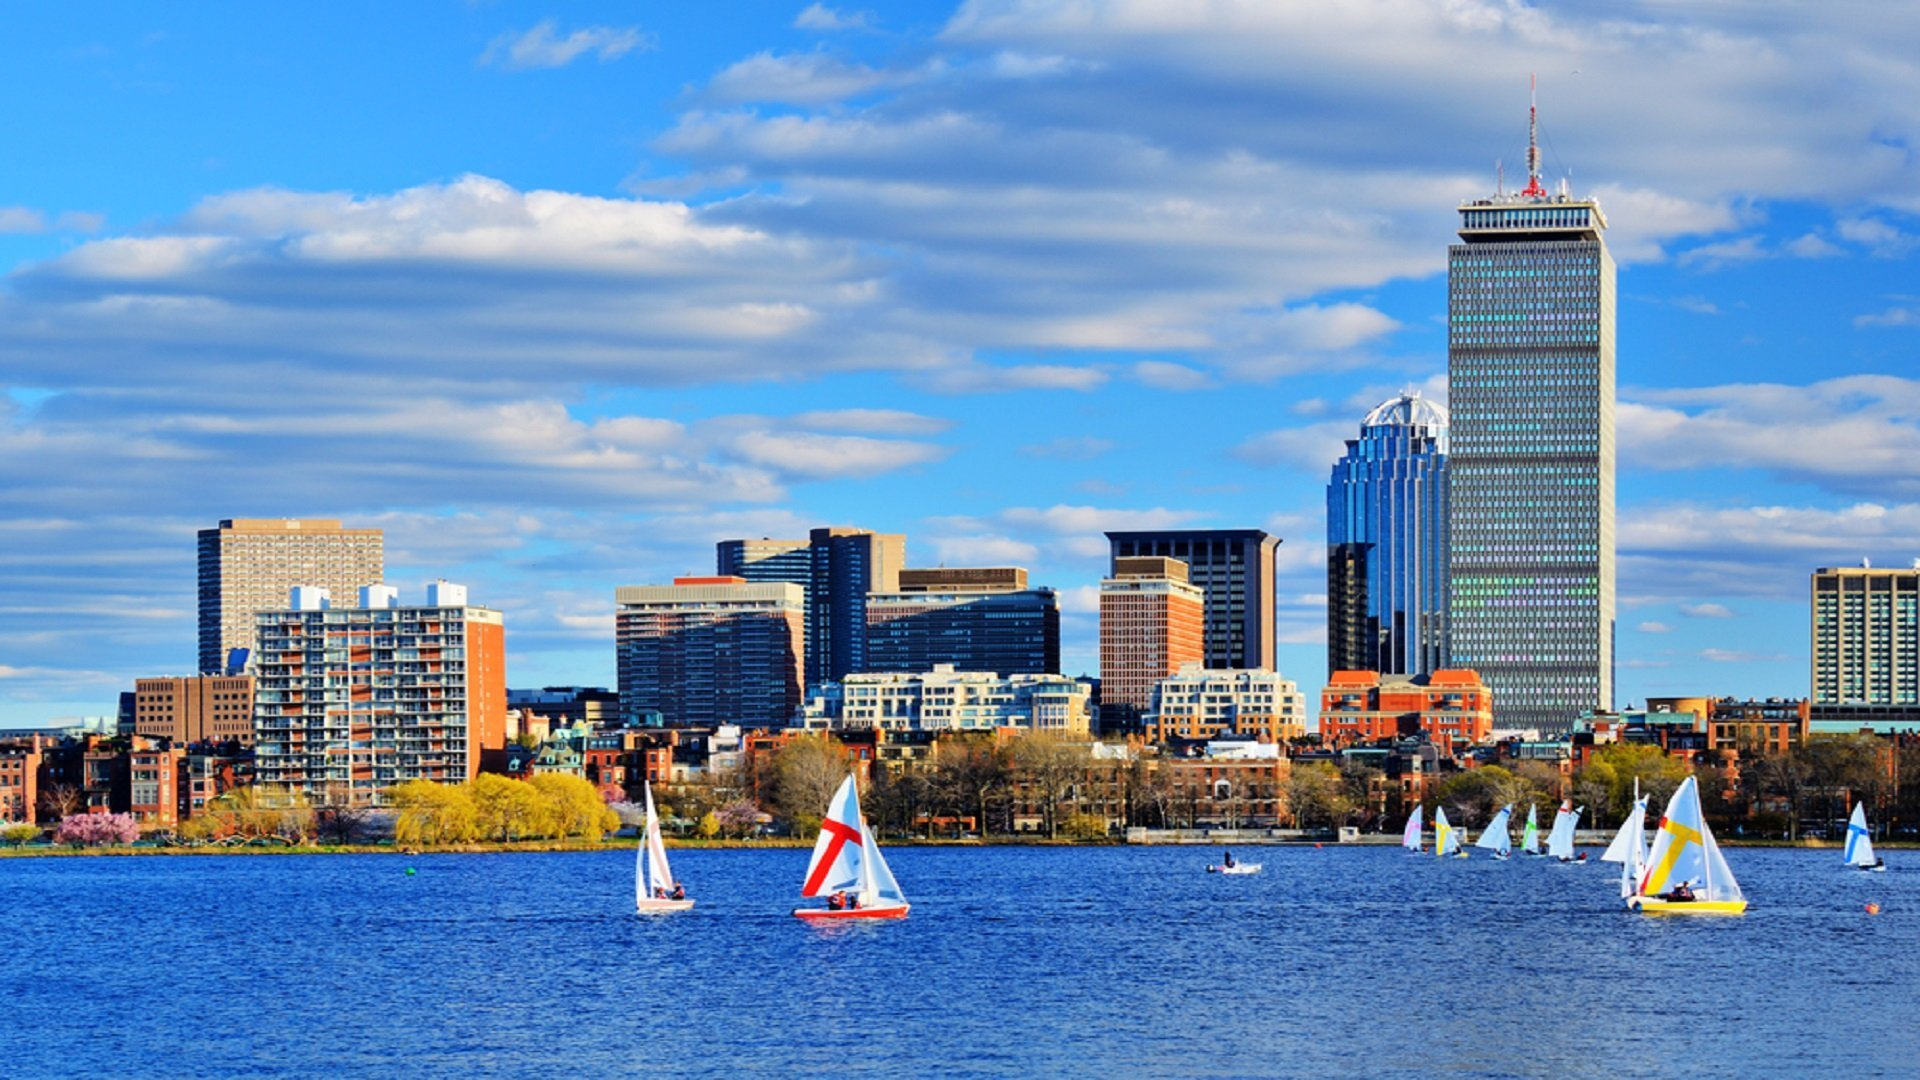 Best Places To Visit In Boston USA Boston Vacation Travel Guide Zen Tripstar trip explore attractions tourism Boston guide Boston vacations